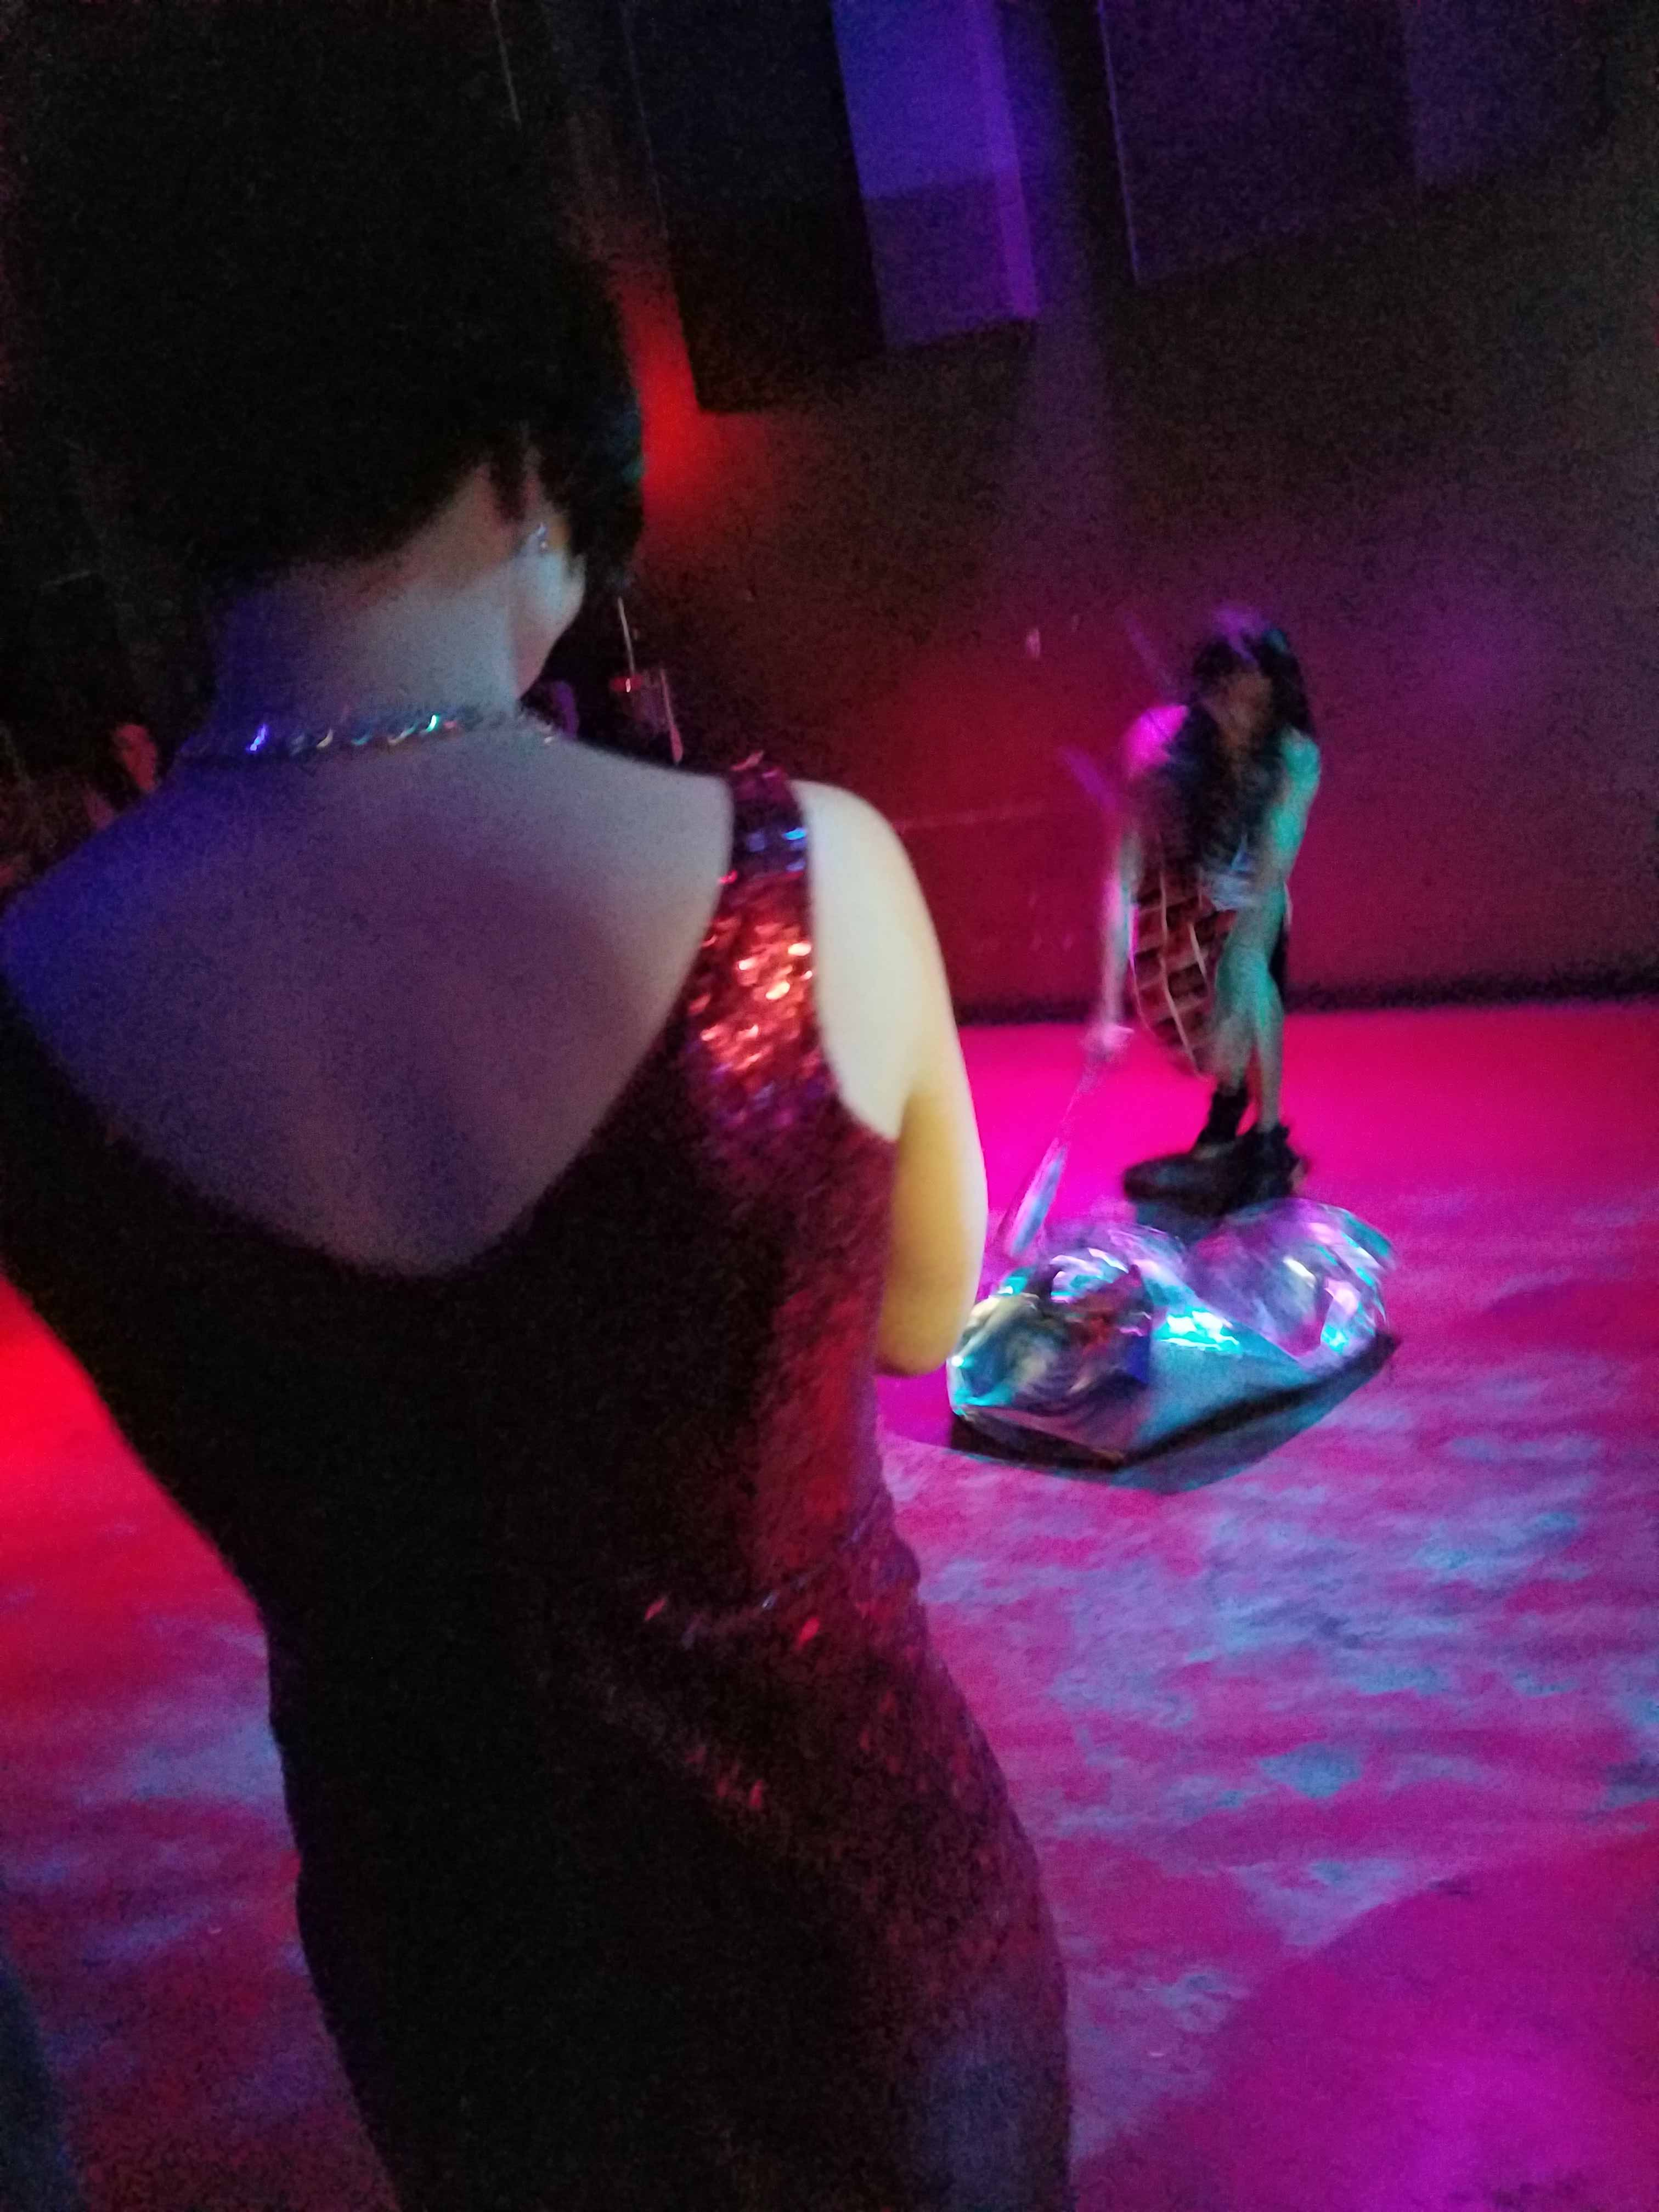 A blurry photo in a dark nightclub of a person smashing a silver trash can with a baseball bat. The photo is taken over the shoulder of a person in a red sequinned dress and short dark hair.